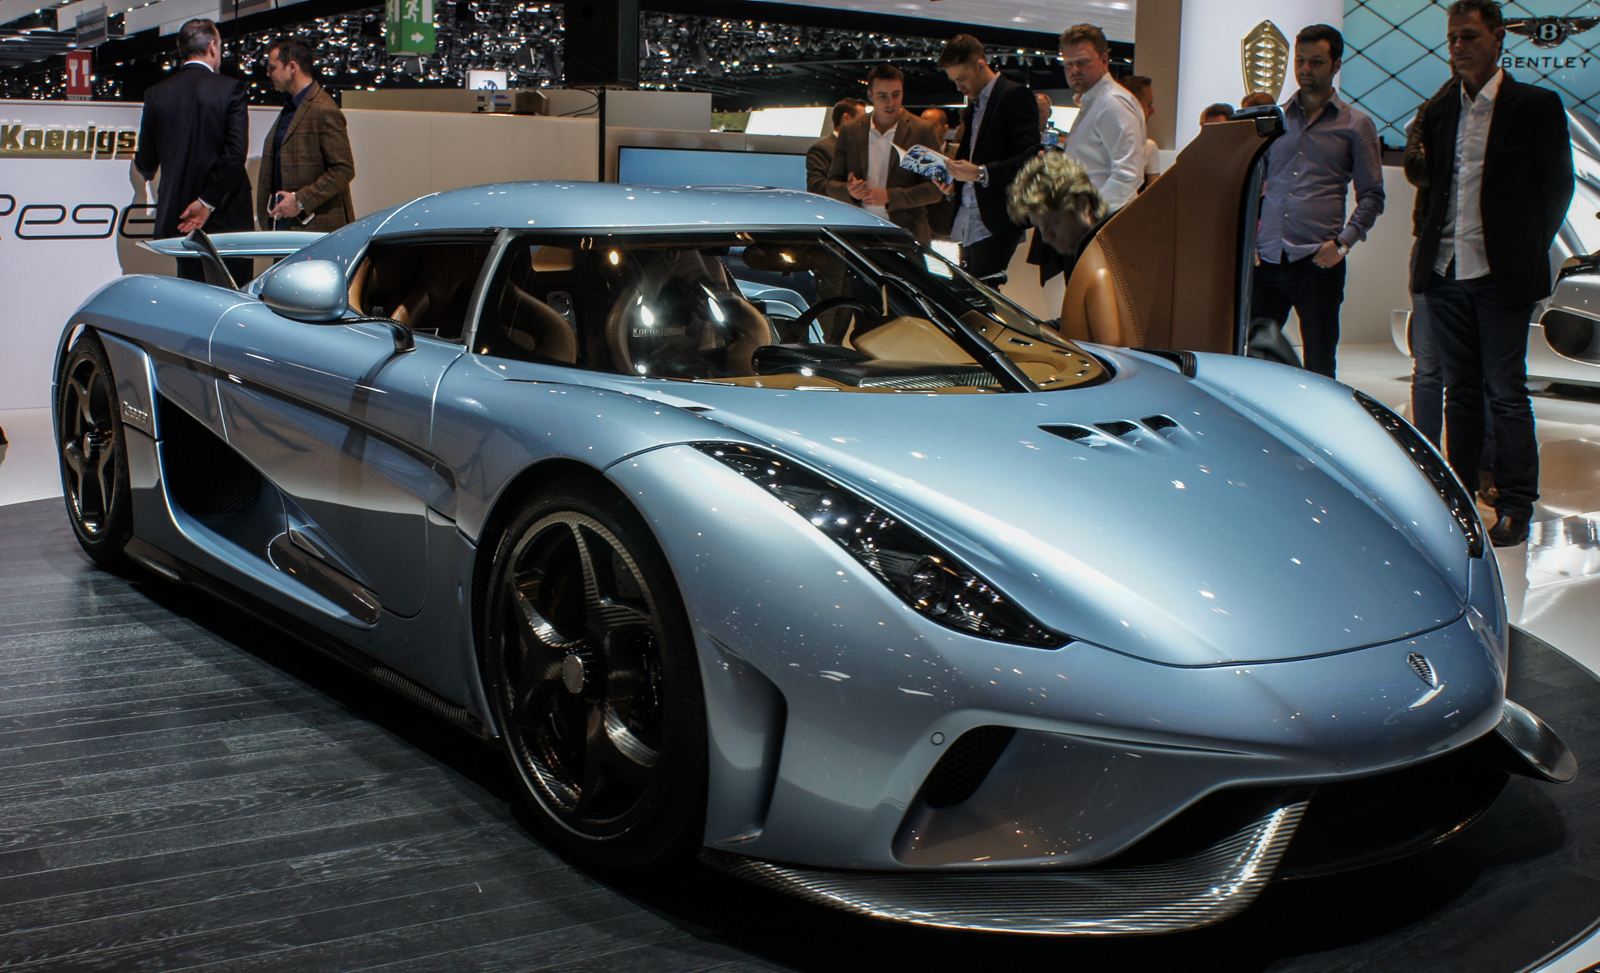 koenigsegg regera 1960s style and 21st century tech pictures page 7 roadshow. Black Bedroom Furniture Sets. Home Design Ideas